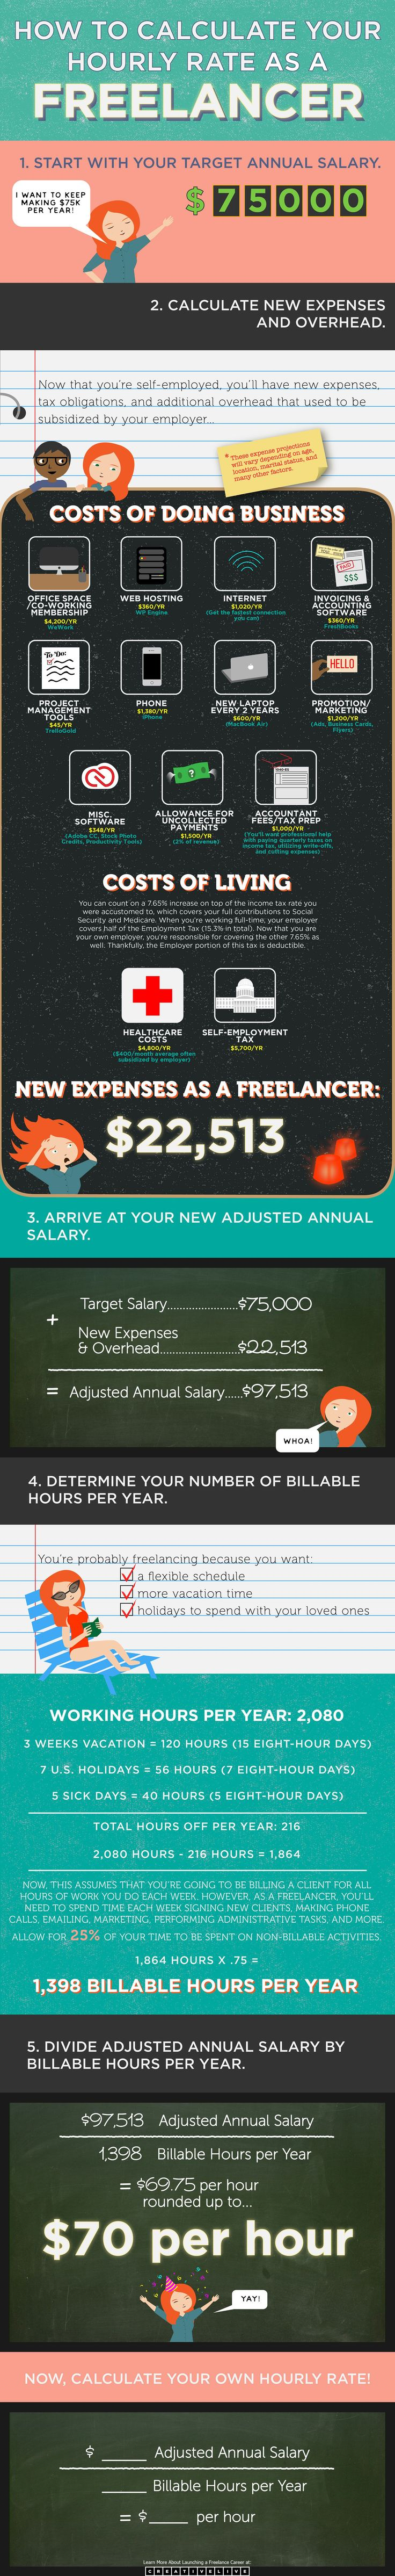 Do you know how much you need to bill for your freelance services? This infographic will show you exactly how to calculate your ideal freelance hourly rate.